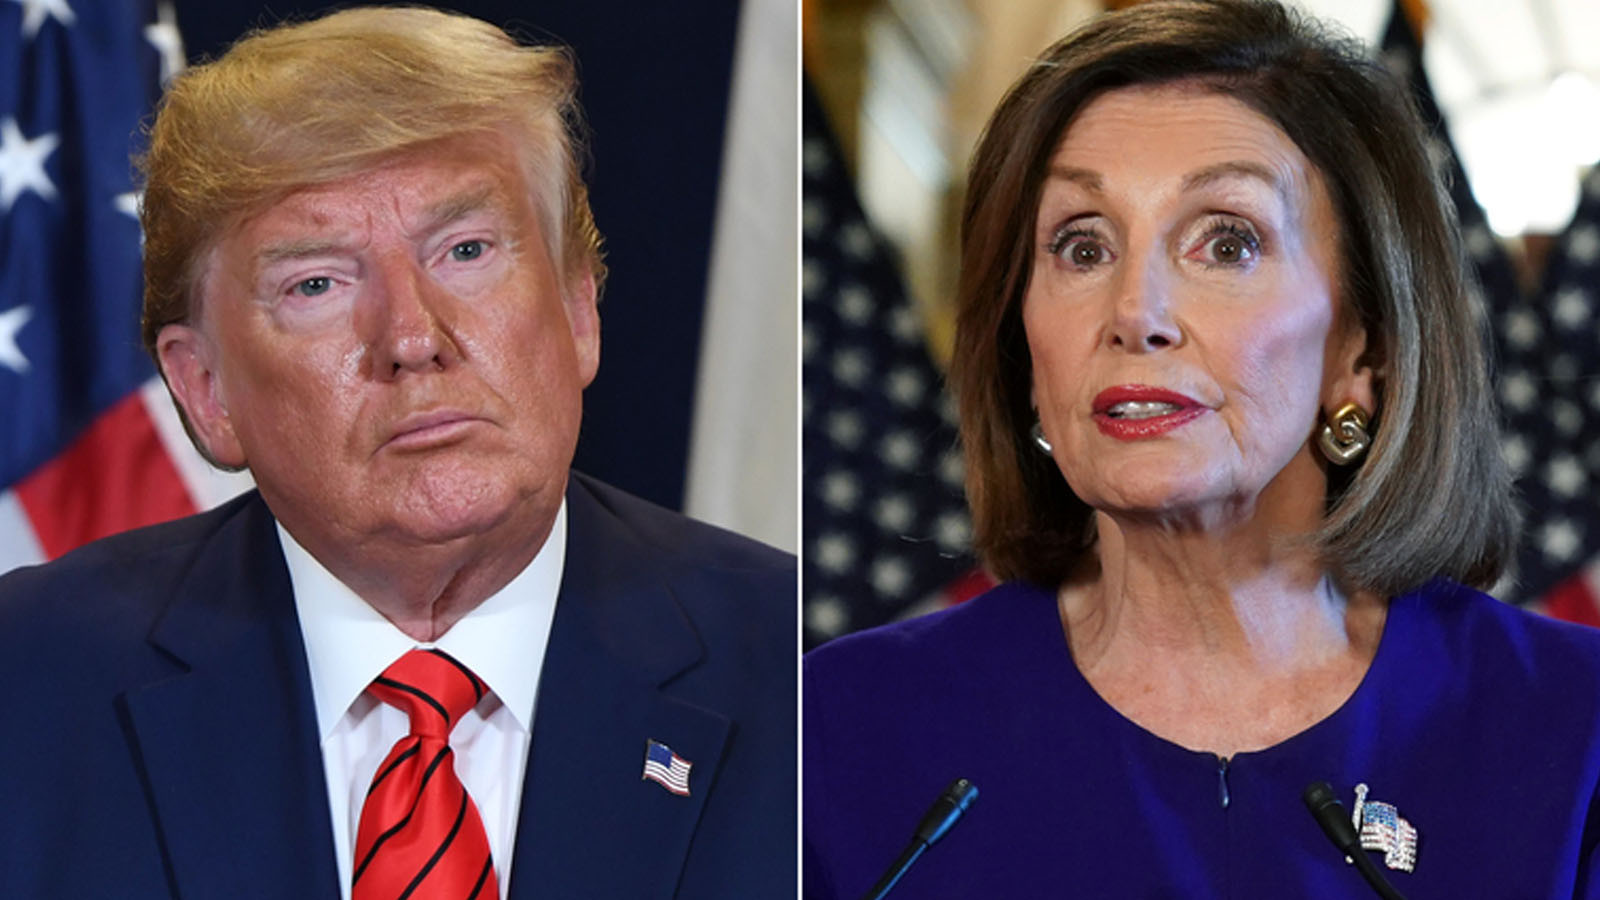 """'We miss having a President that doesn't attack Americans first thing in the morning"""" Social media reacts to Trump's barrage of insults at Pelosi"""